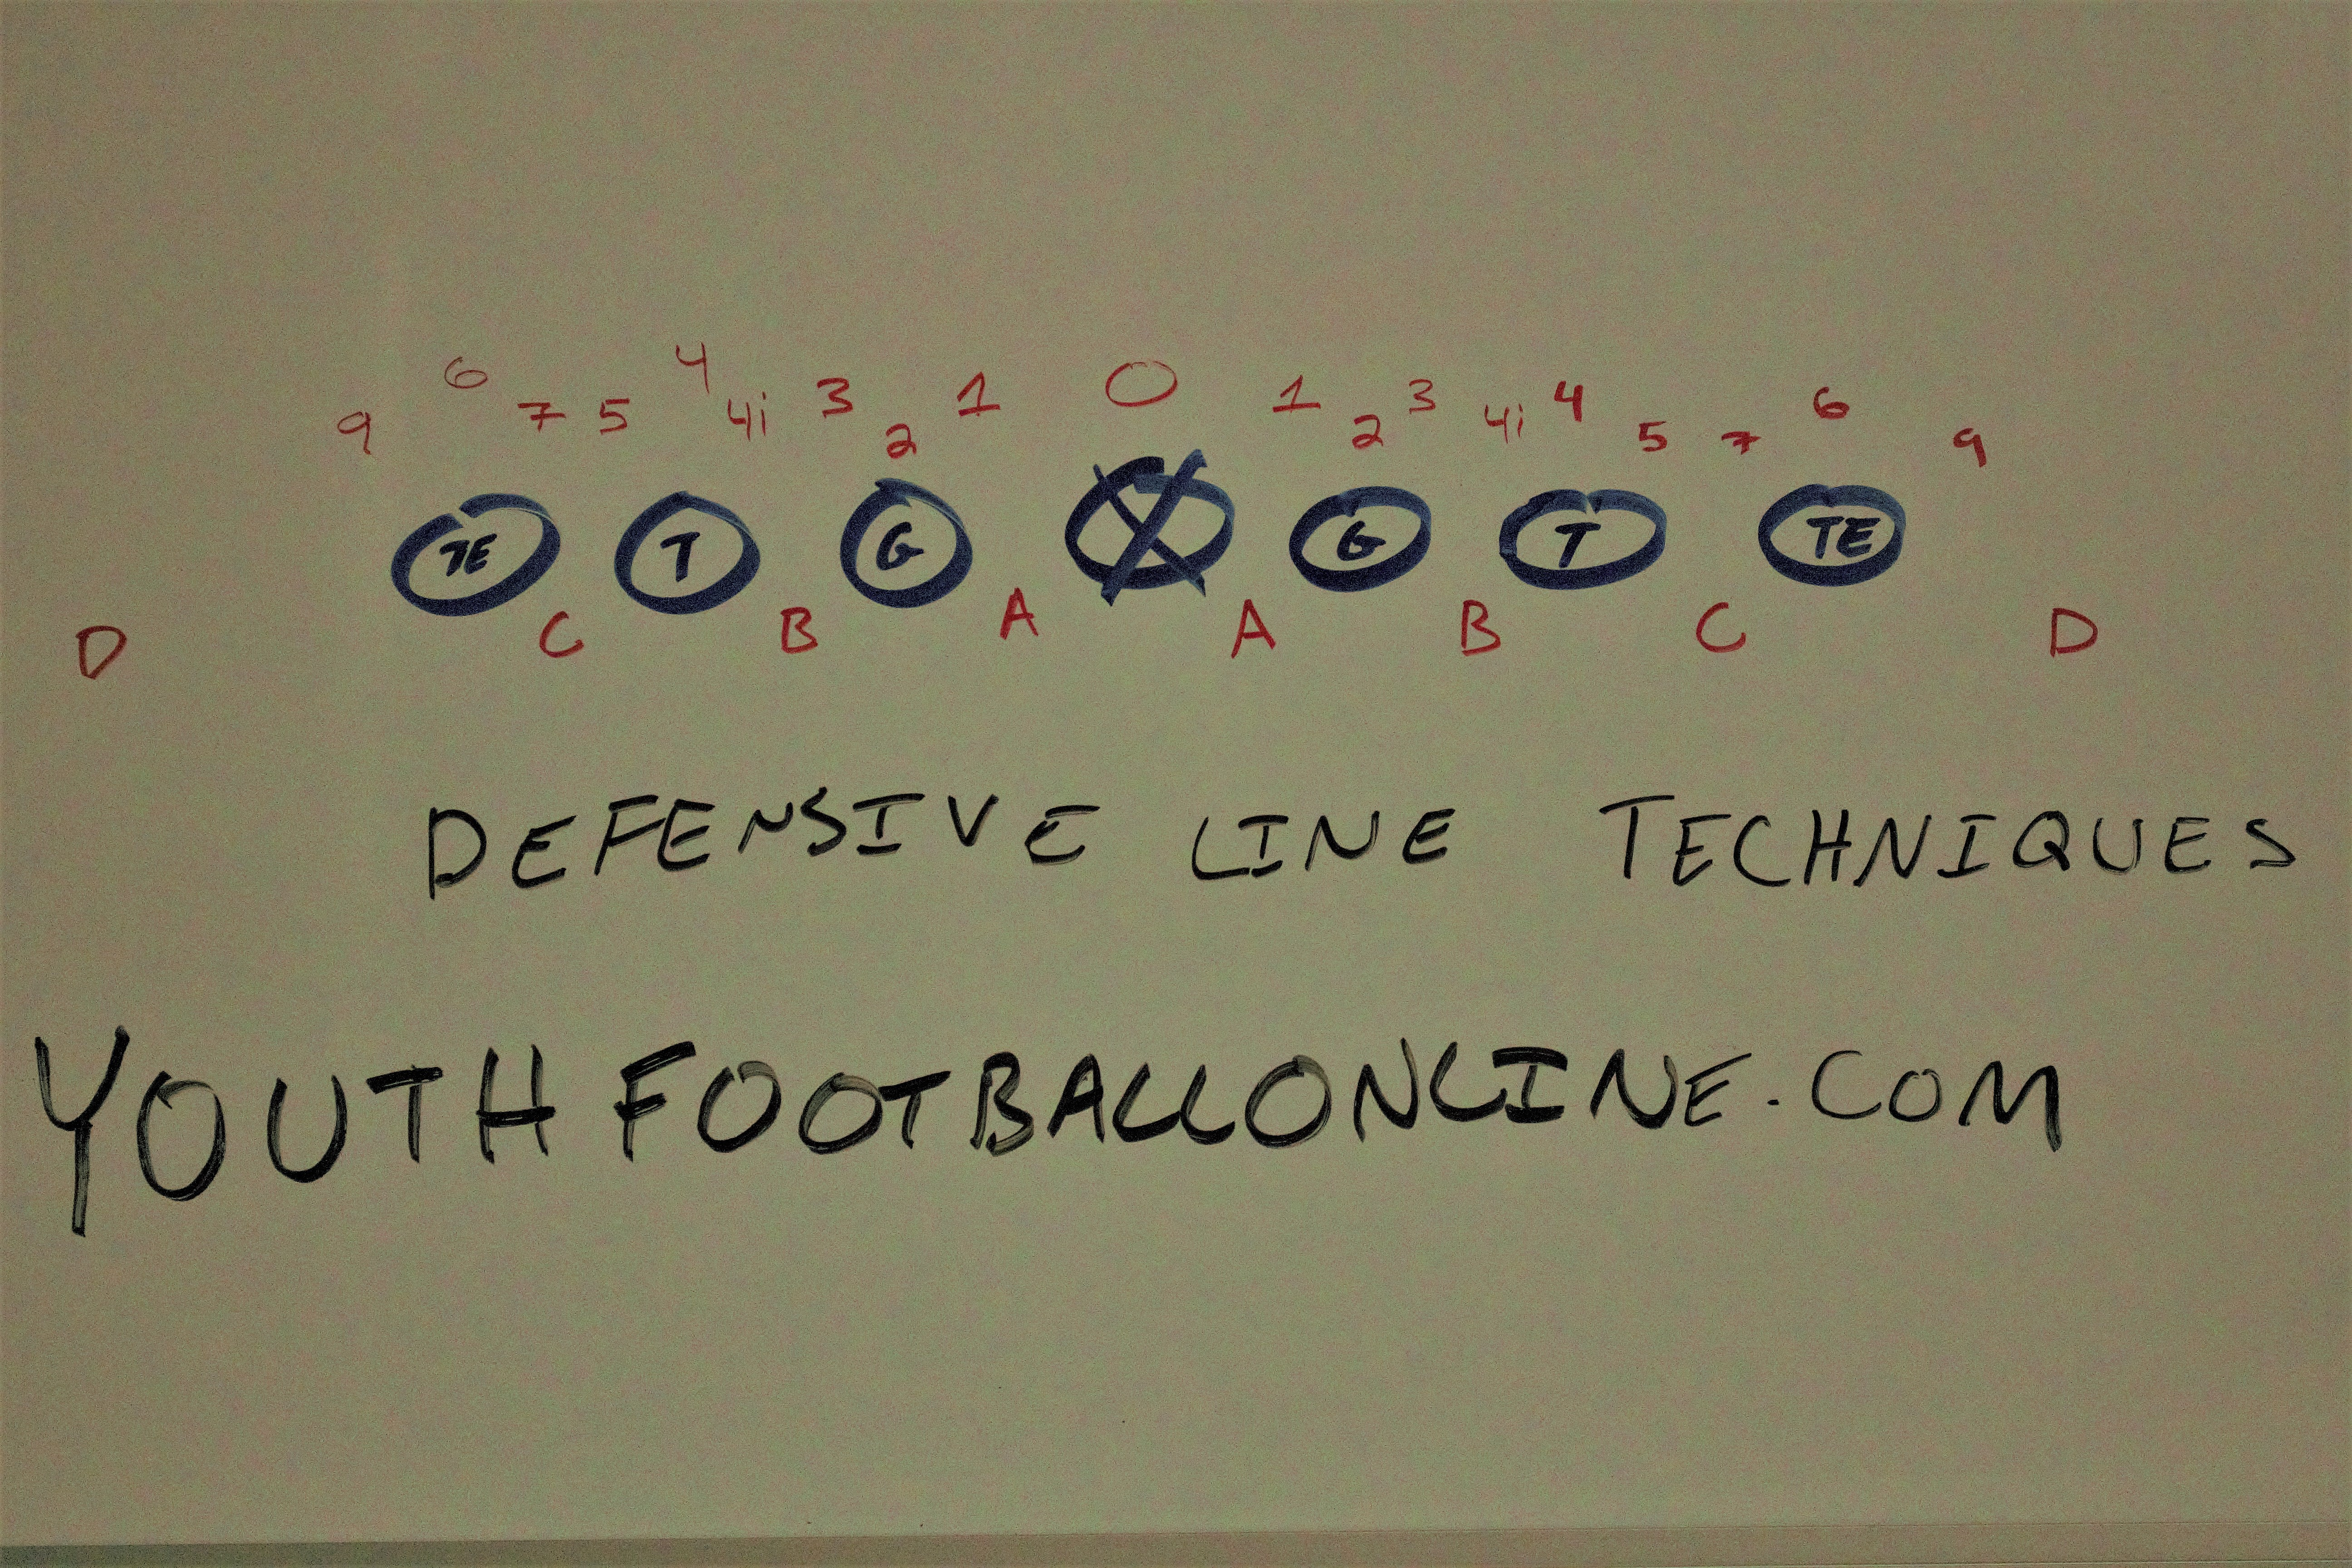 Defensive Line Gaps And Techniques In Youth Football